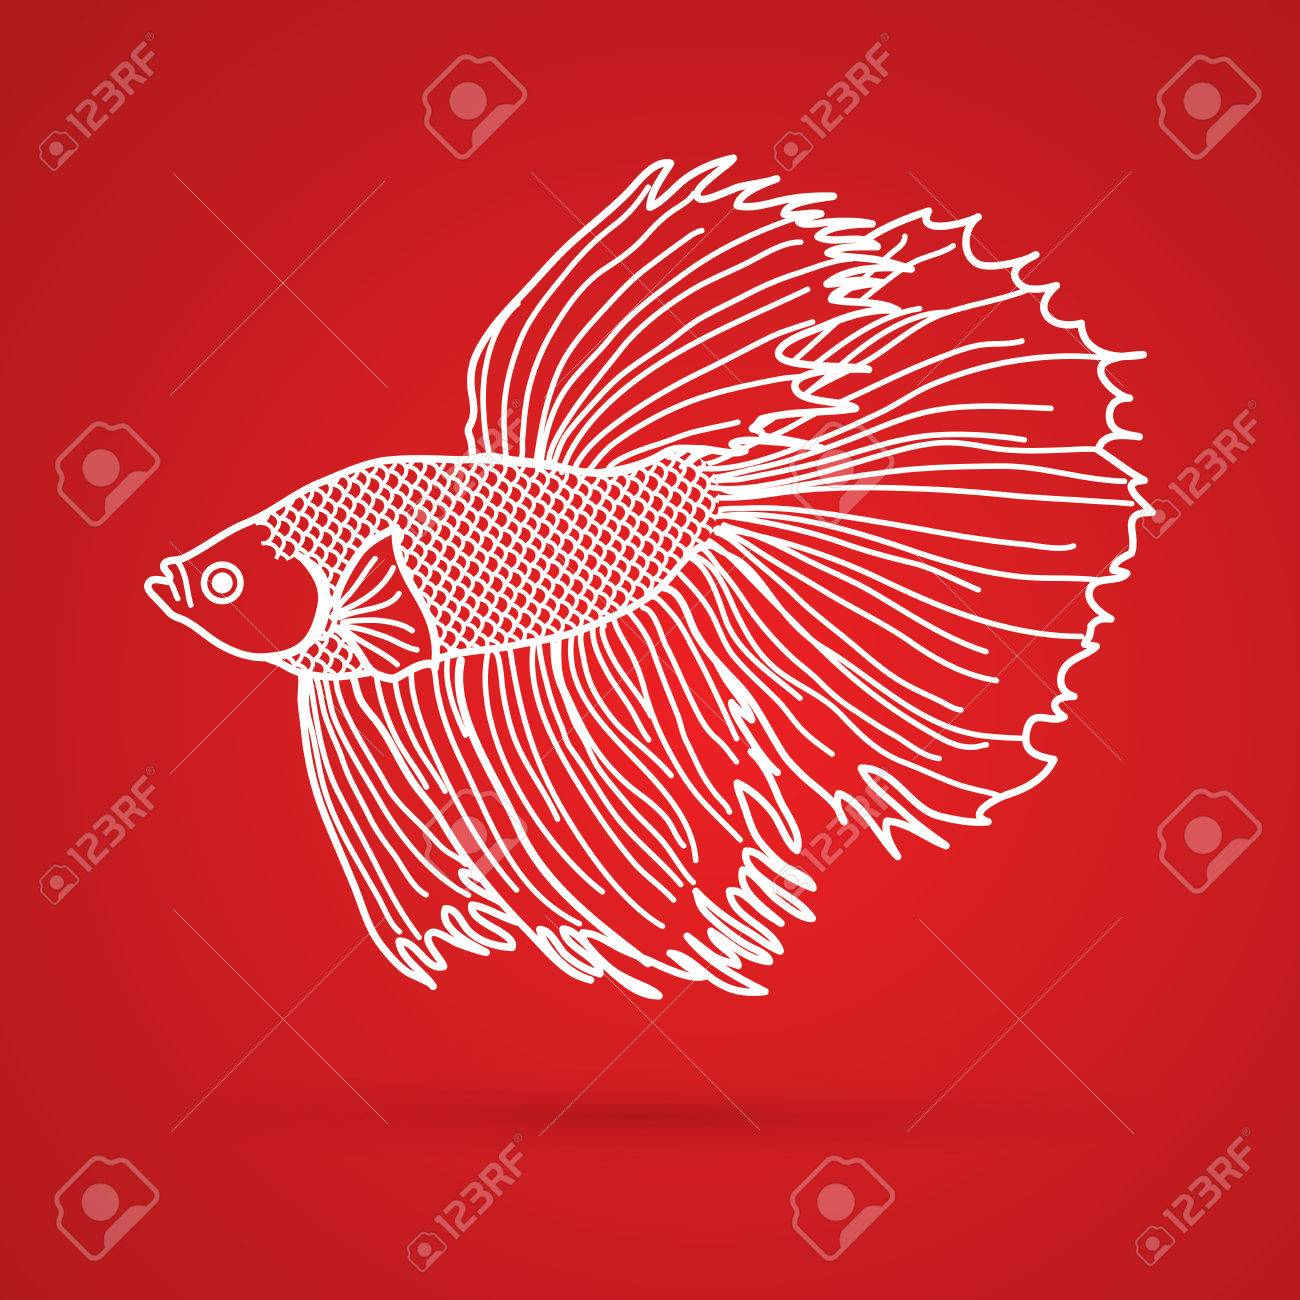 Siamese Fighter Fish Outline Graphic Vector. Royalty Free Cliparts ...